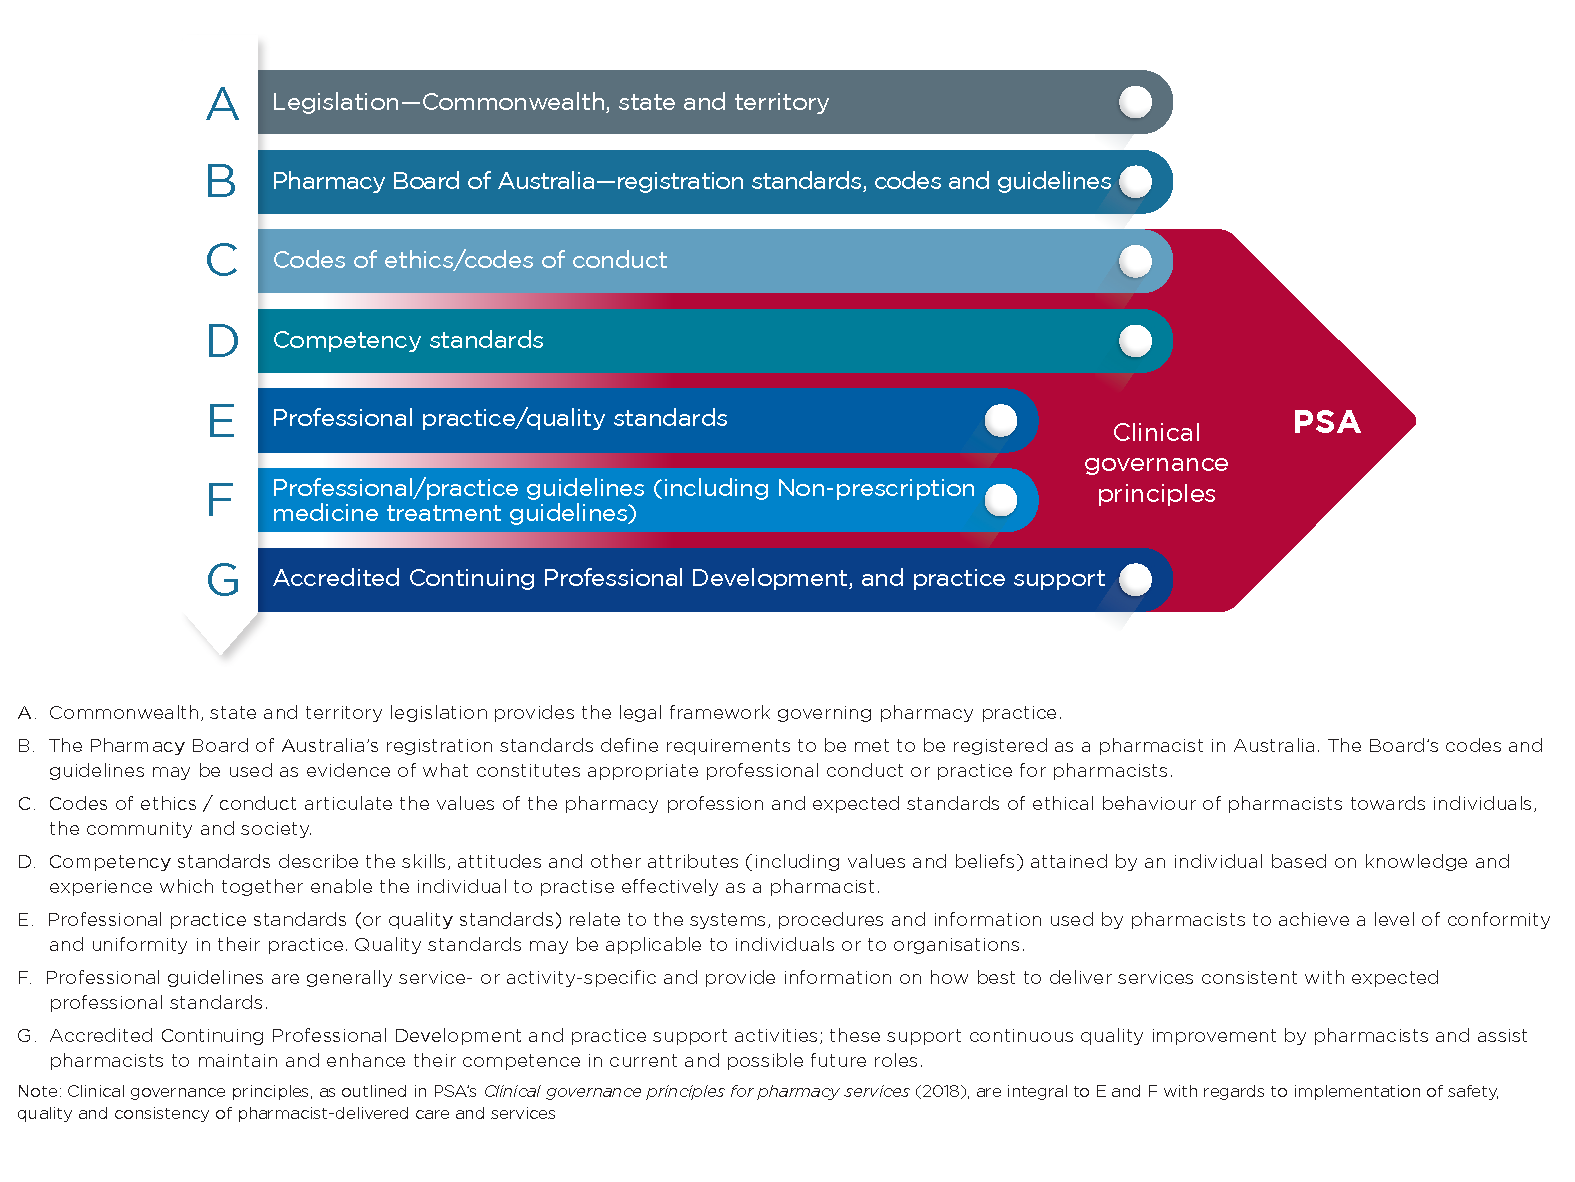 Broad hierarchy of guidance and regulation of pharmacy practice v2